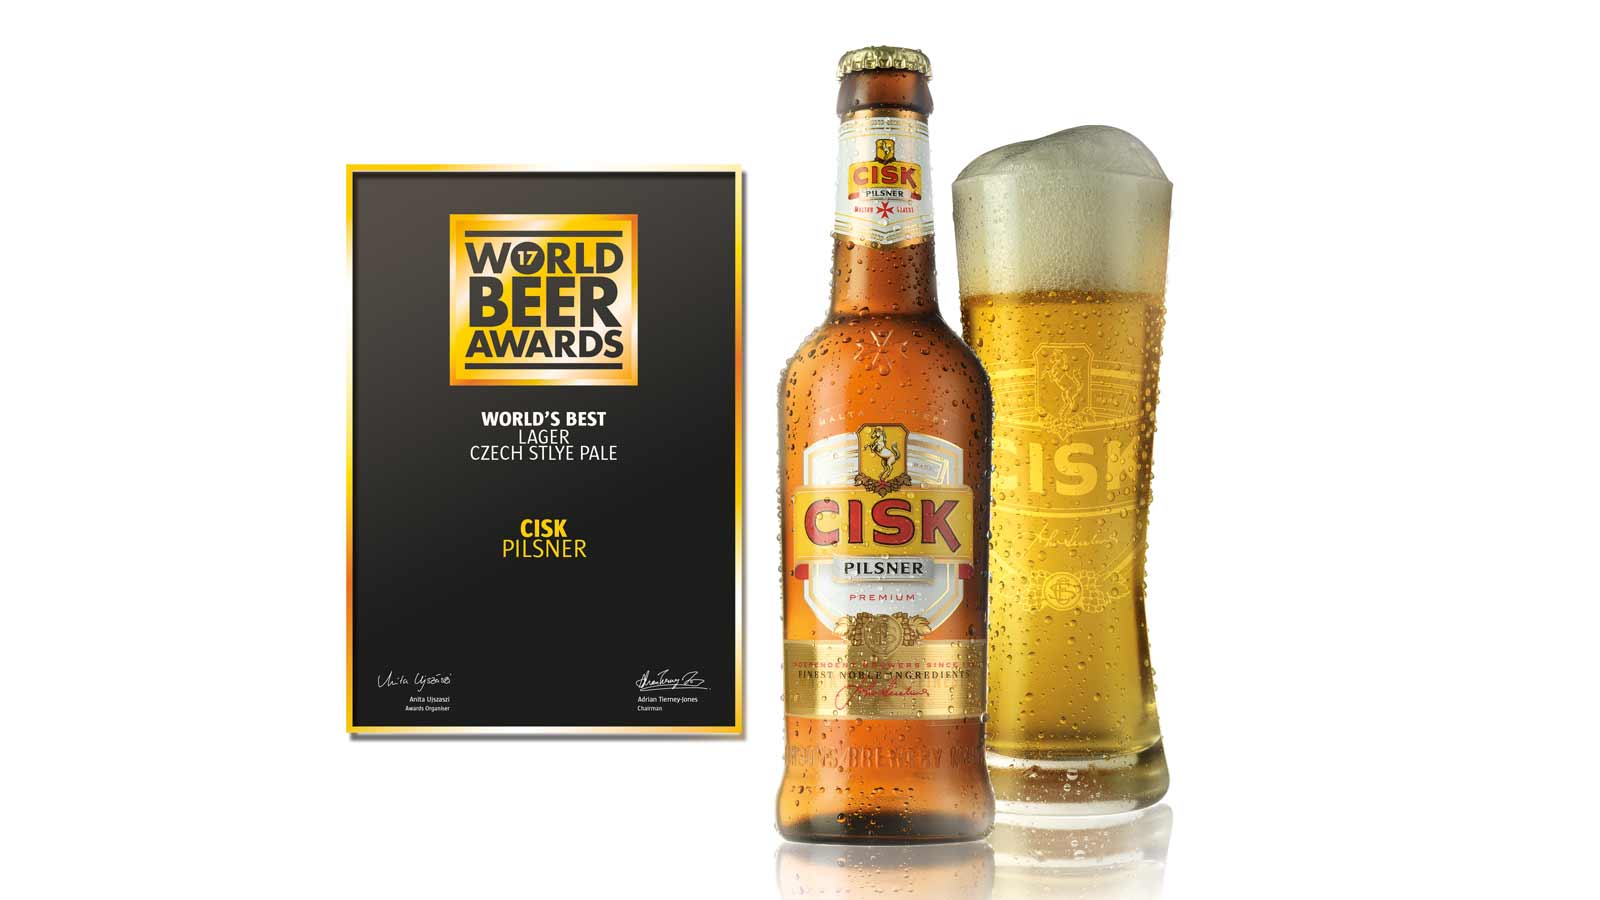 Cisk Pilsner voted World's Best in World Beer Awards 2017